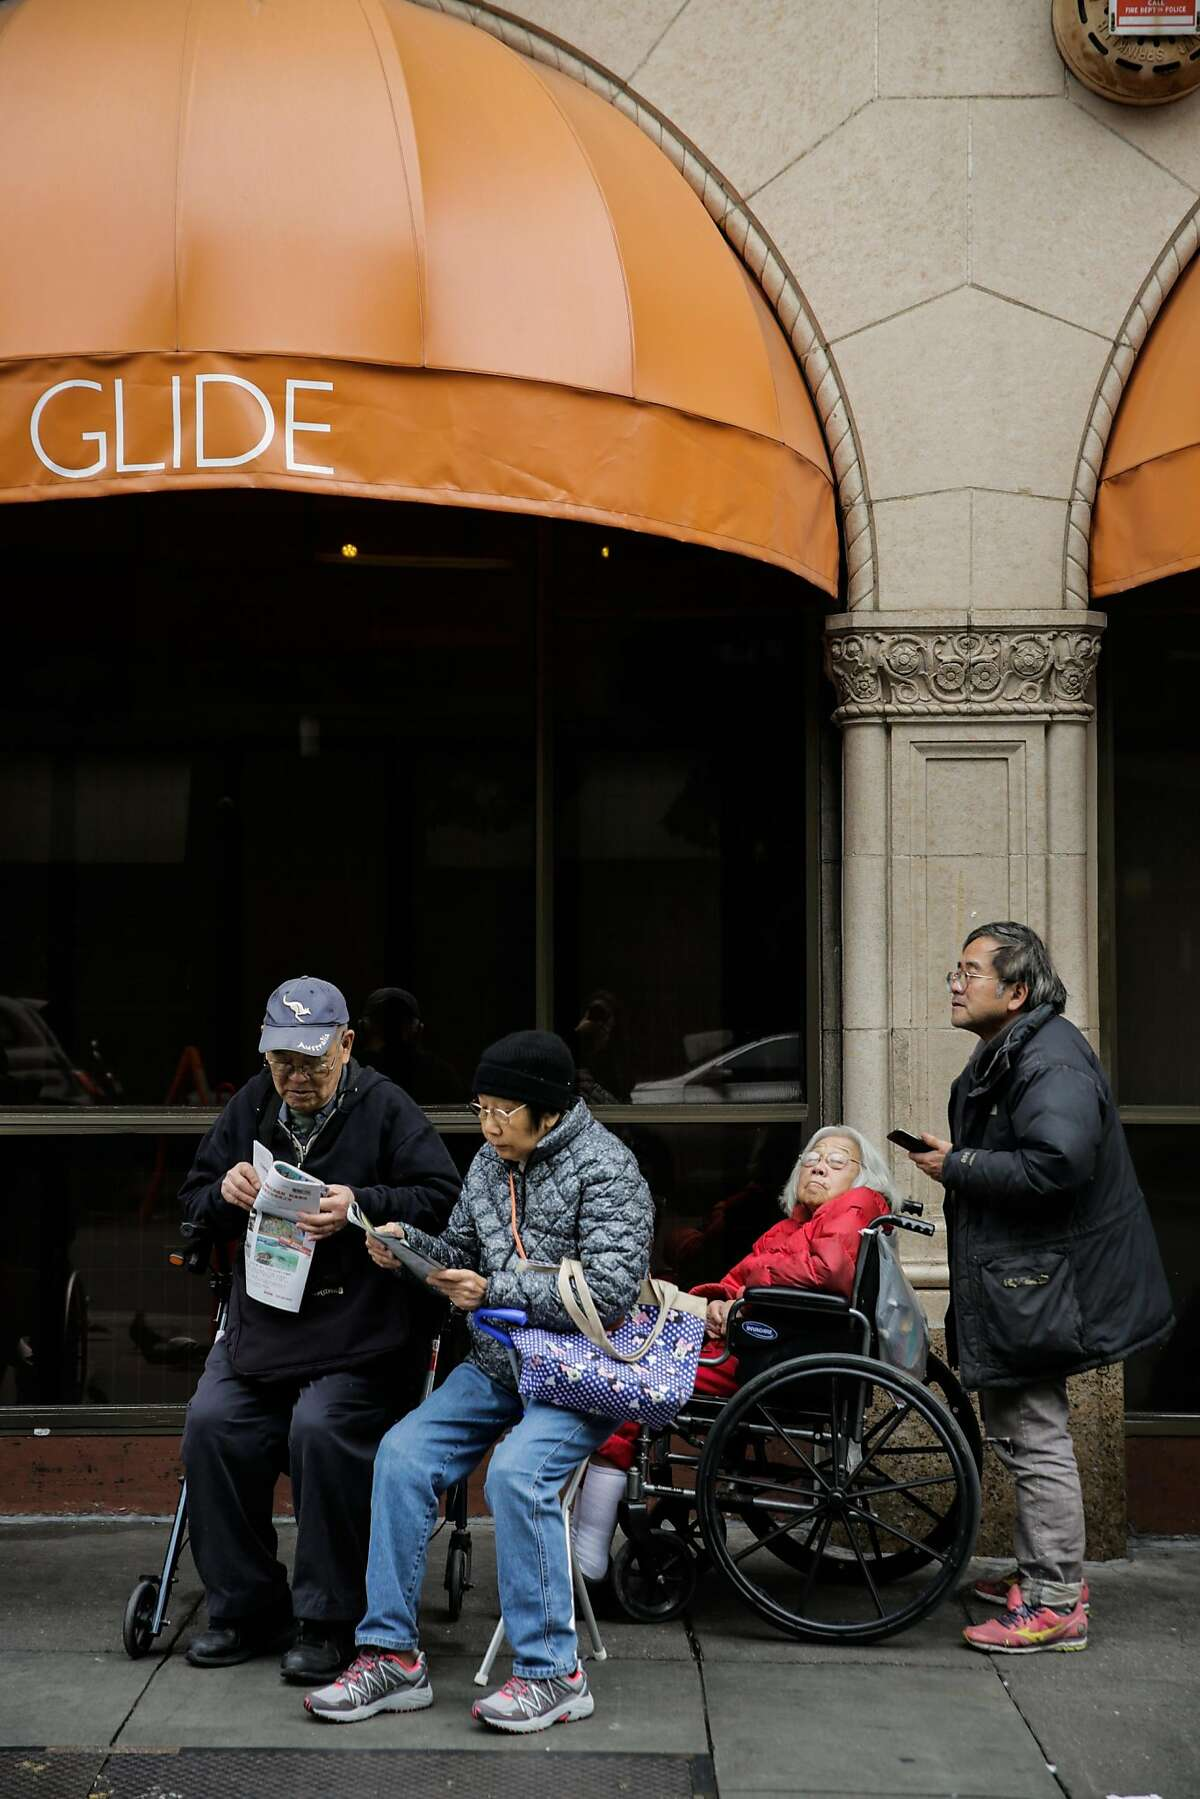 People wait outside Glide Memorial Church ahead of a free Christmas Eve lunch hosted by House of Prime Rib in San Francisco, Calif., on Sunday, Dec. 24, 2017.